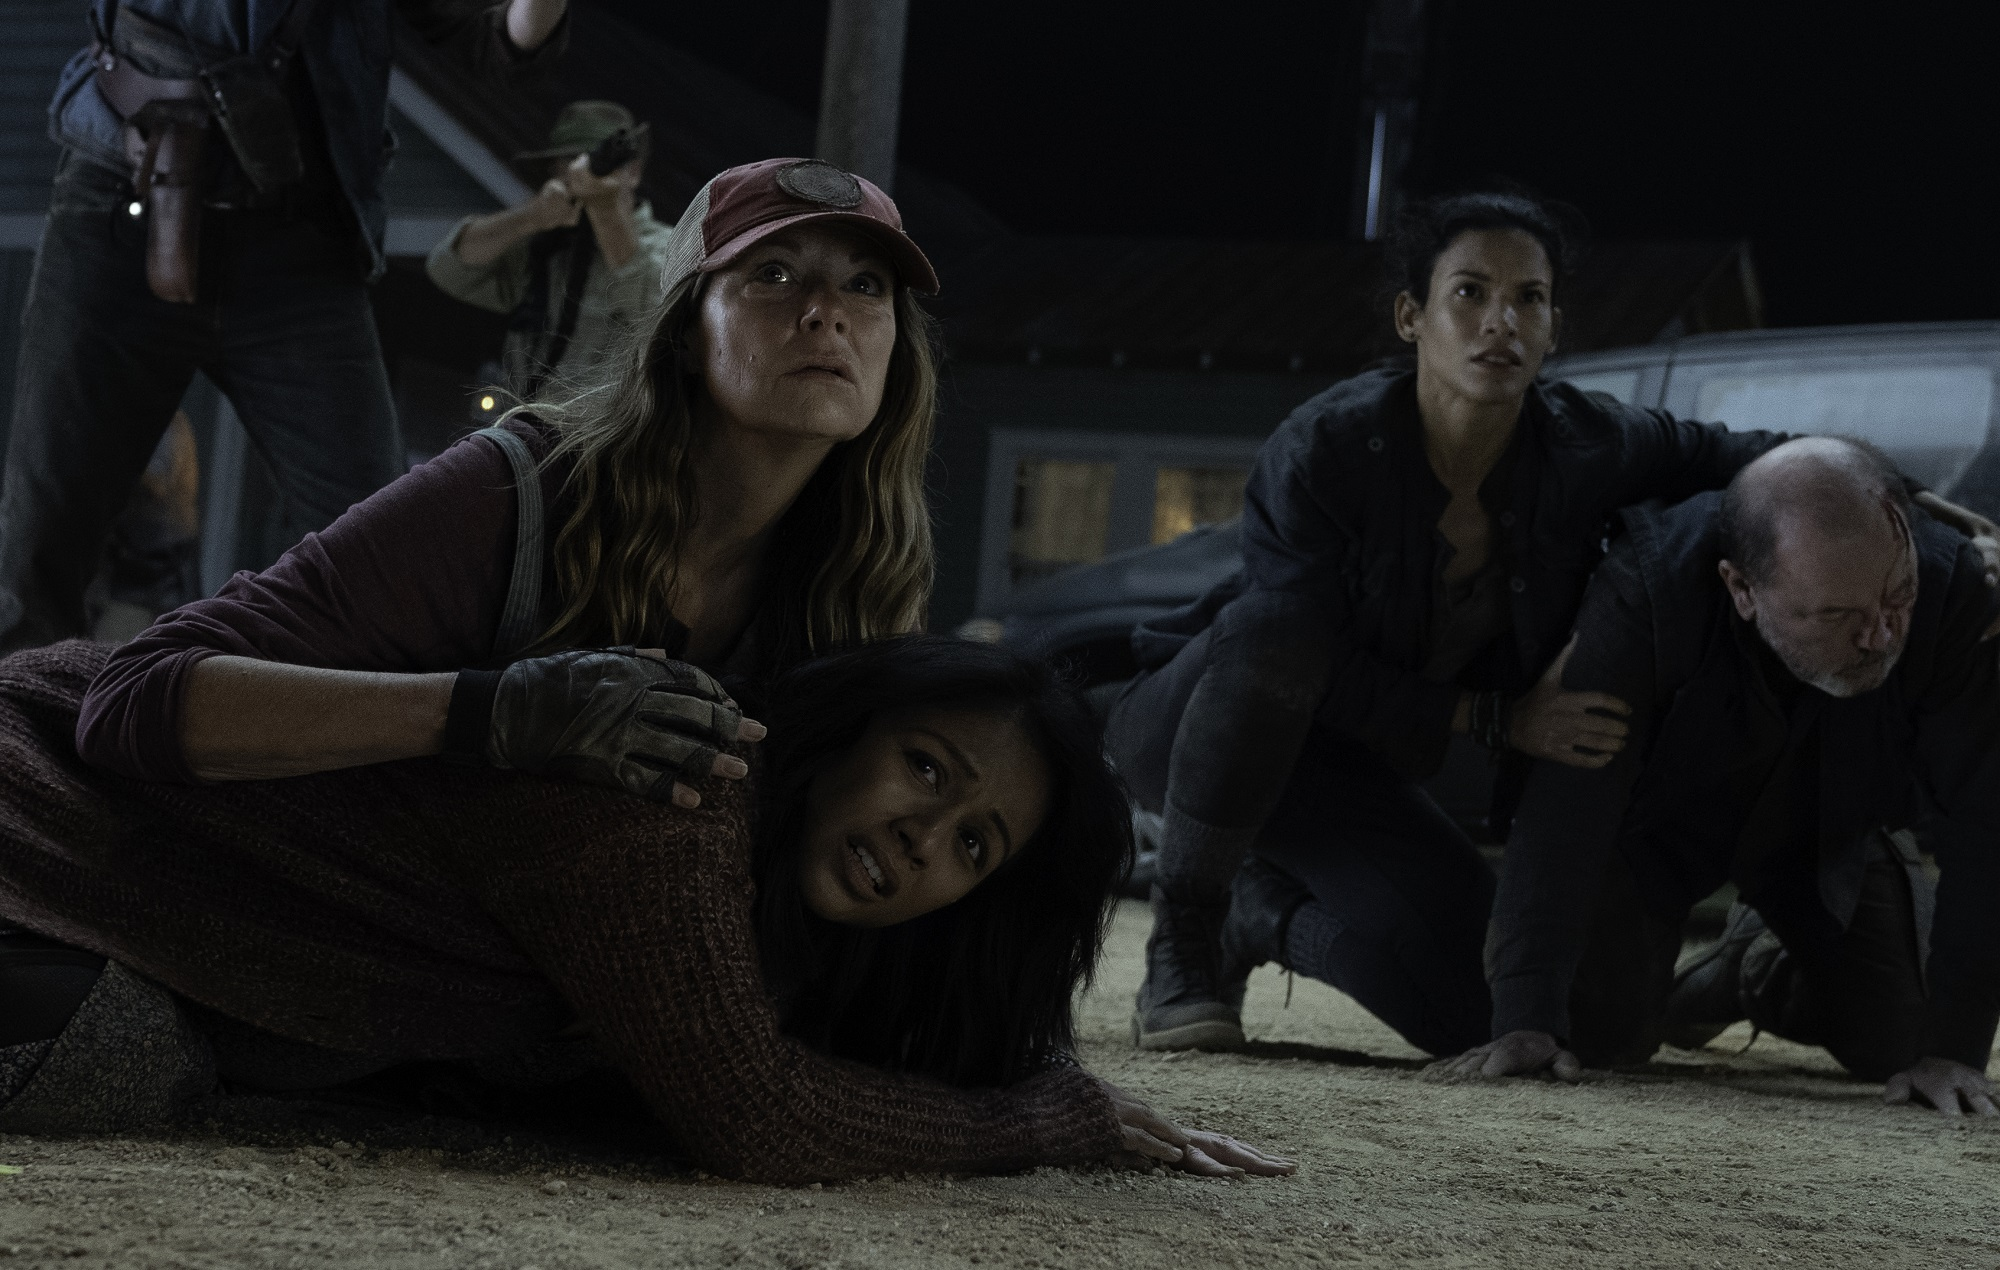 'Fear The Walking Dead' first-look pictures show aftermath of tragic twist